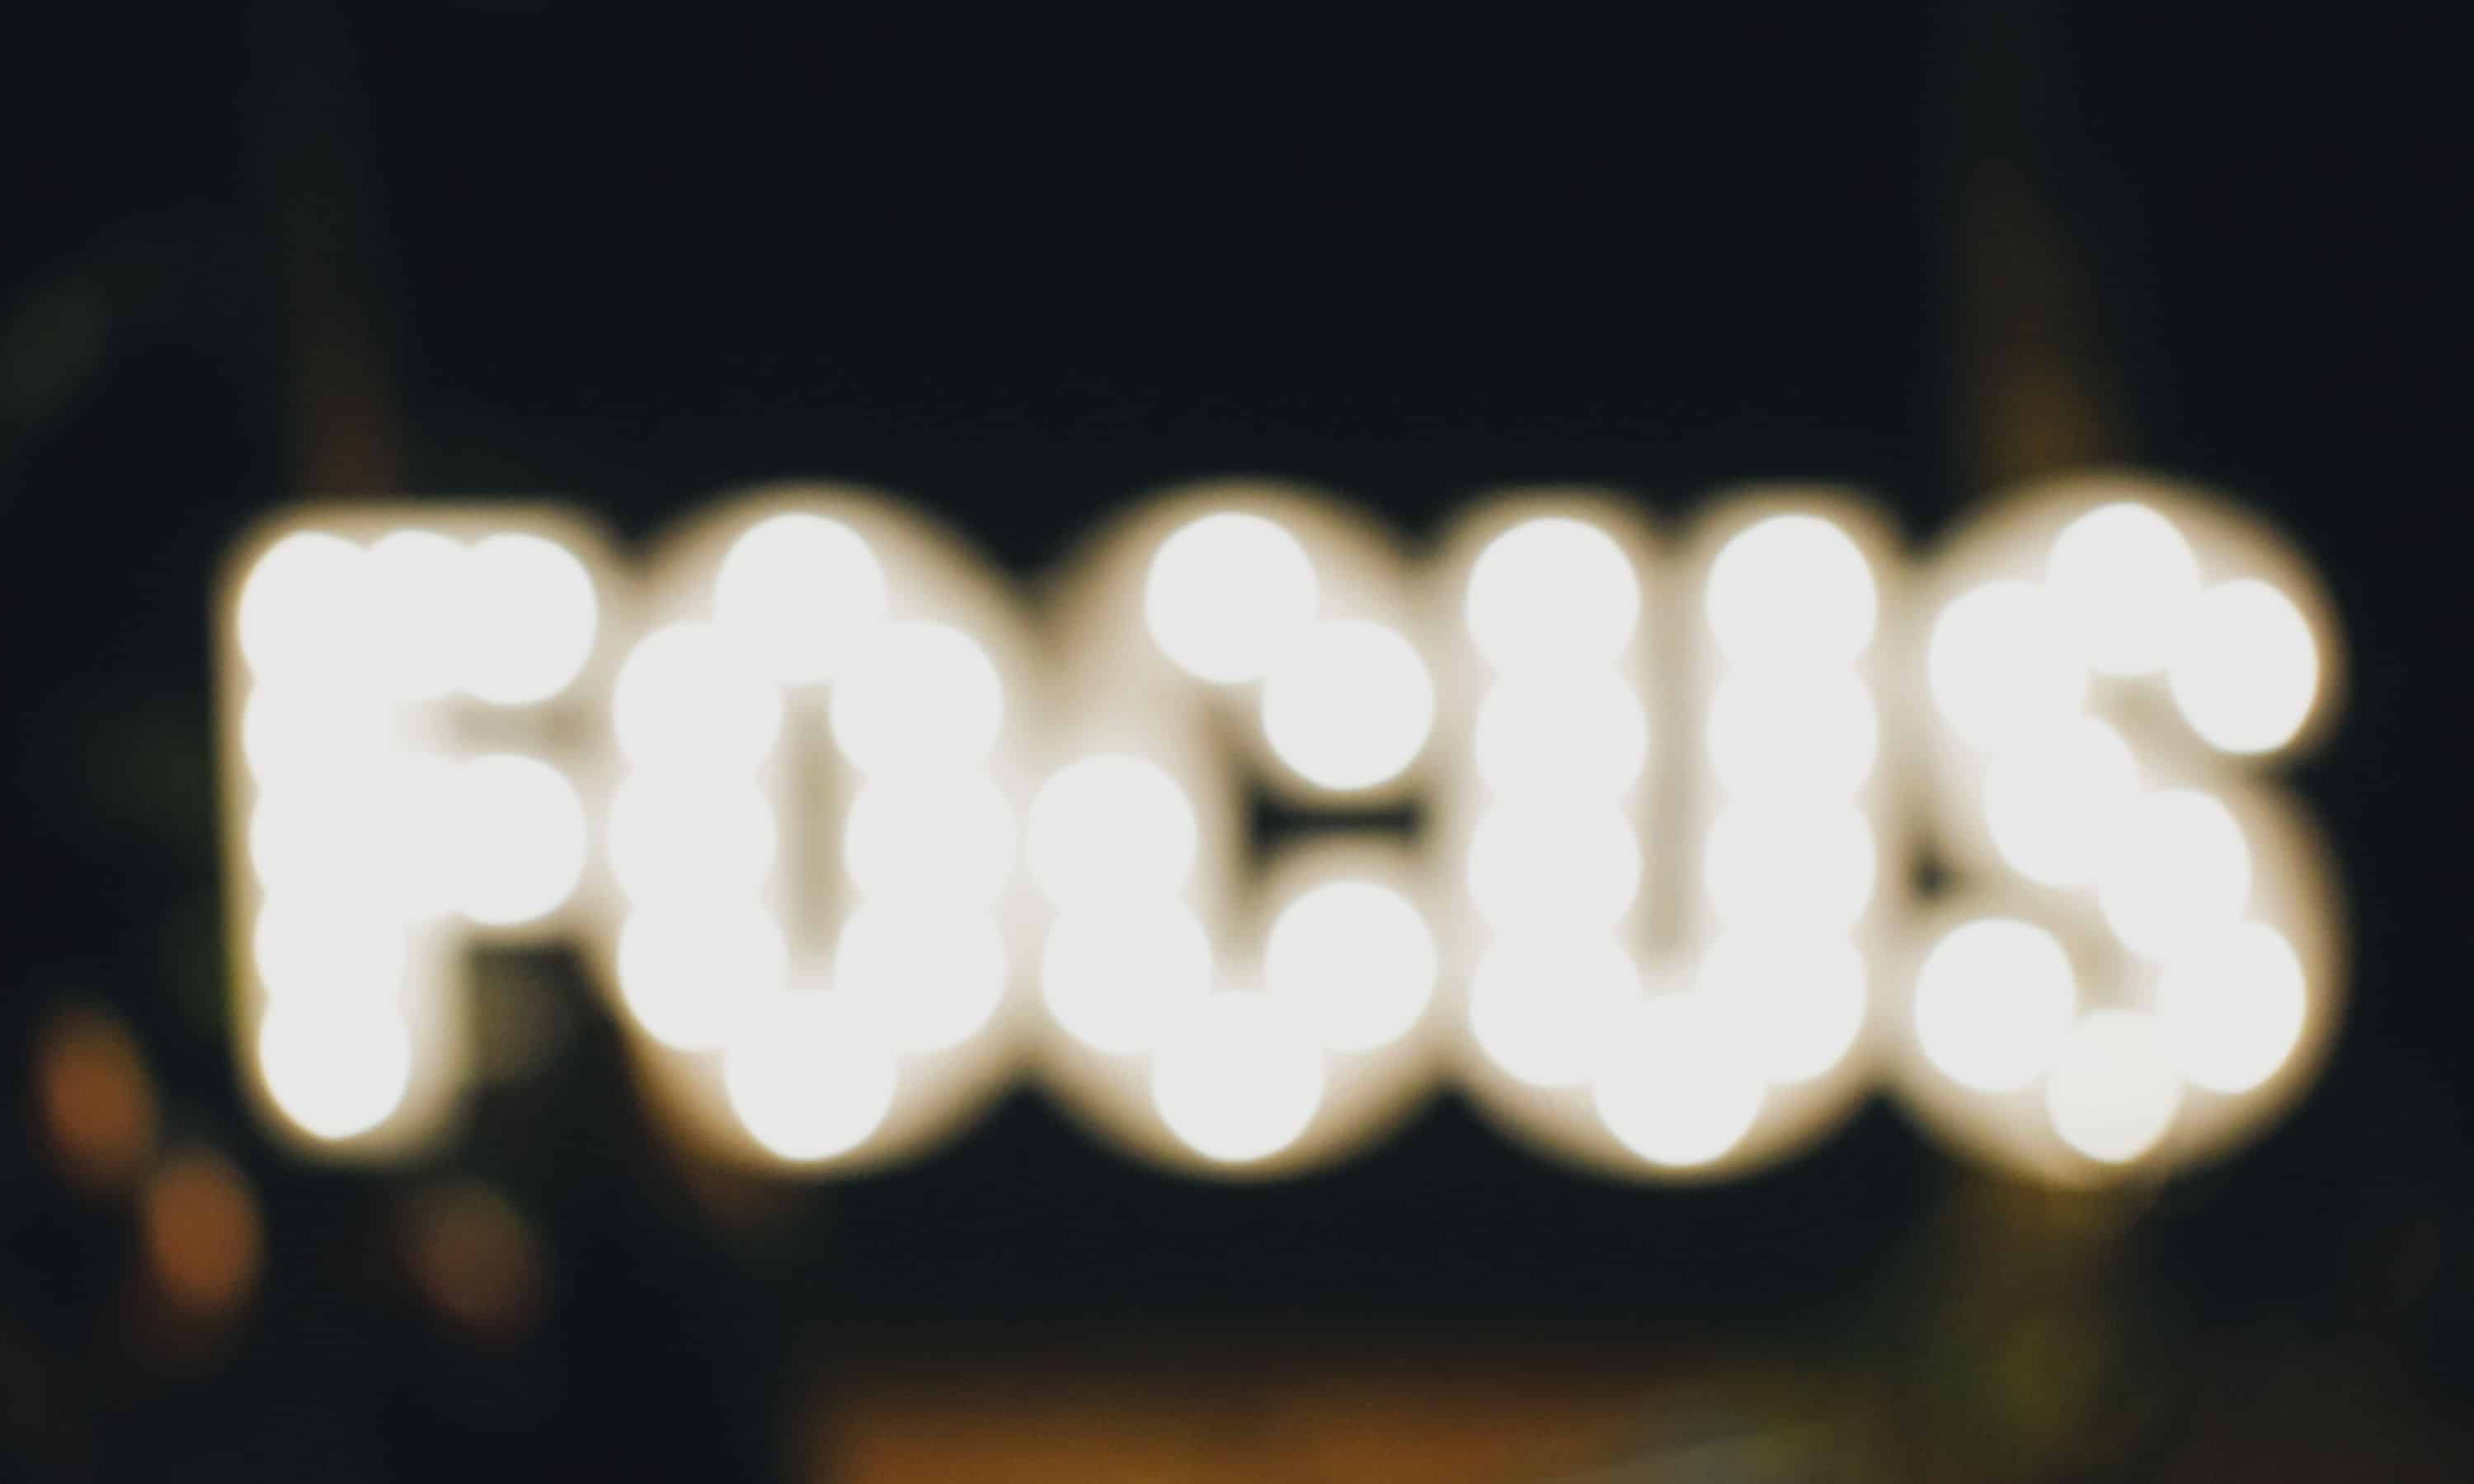 Focus Text in lights